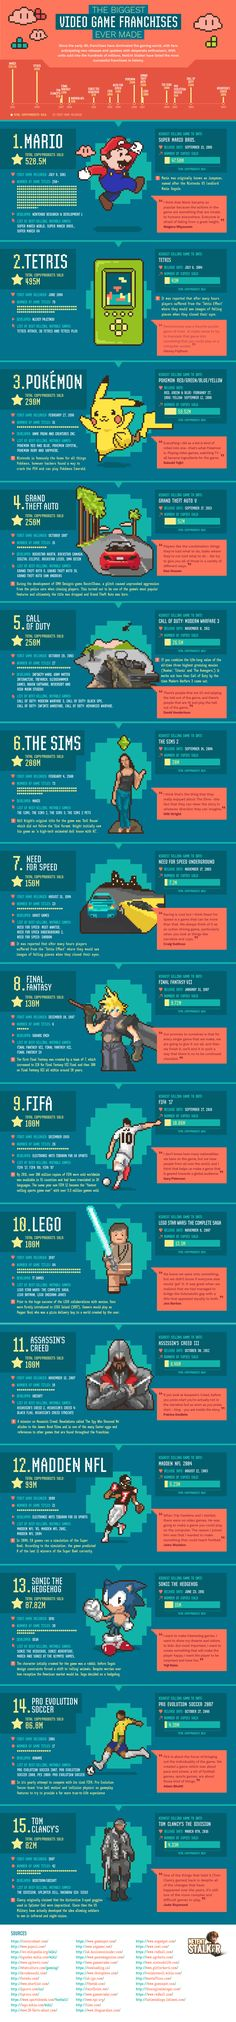 The Biggest Video Game Franchises Ever Made #infographic #Games #VideoGames #Business #Franchises